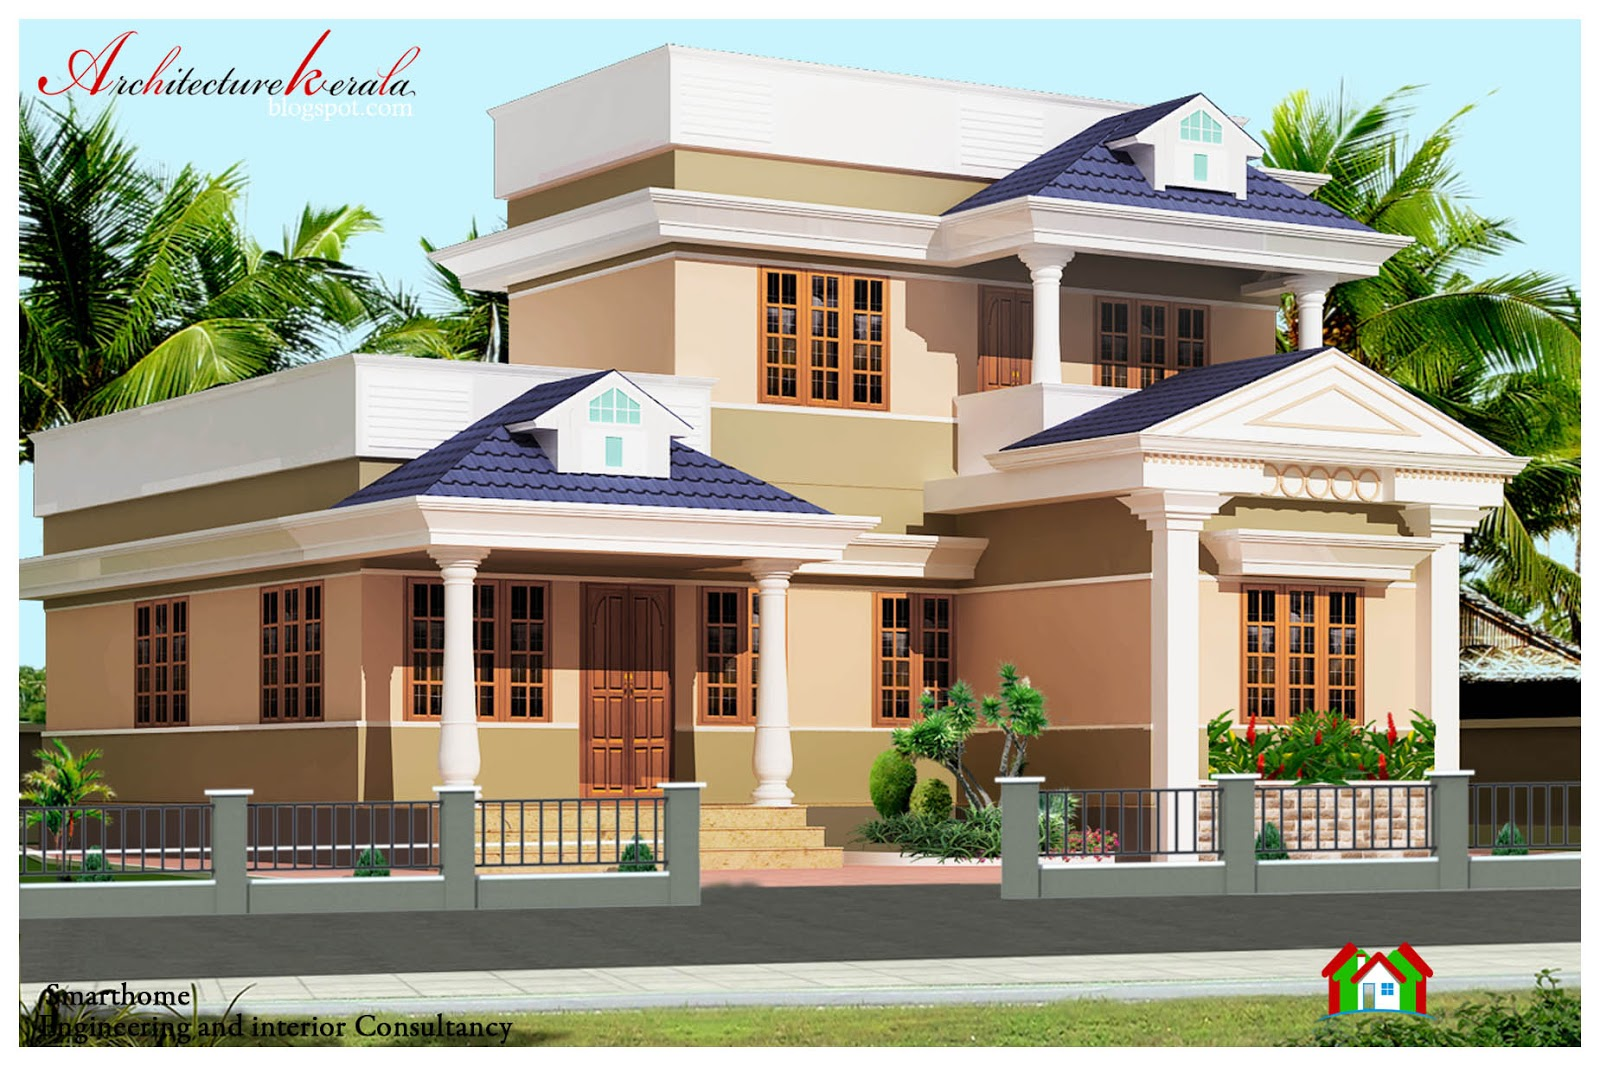 Architecture kerala 1000 sq ft kerala style house plan for Kerala house photos